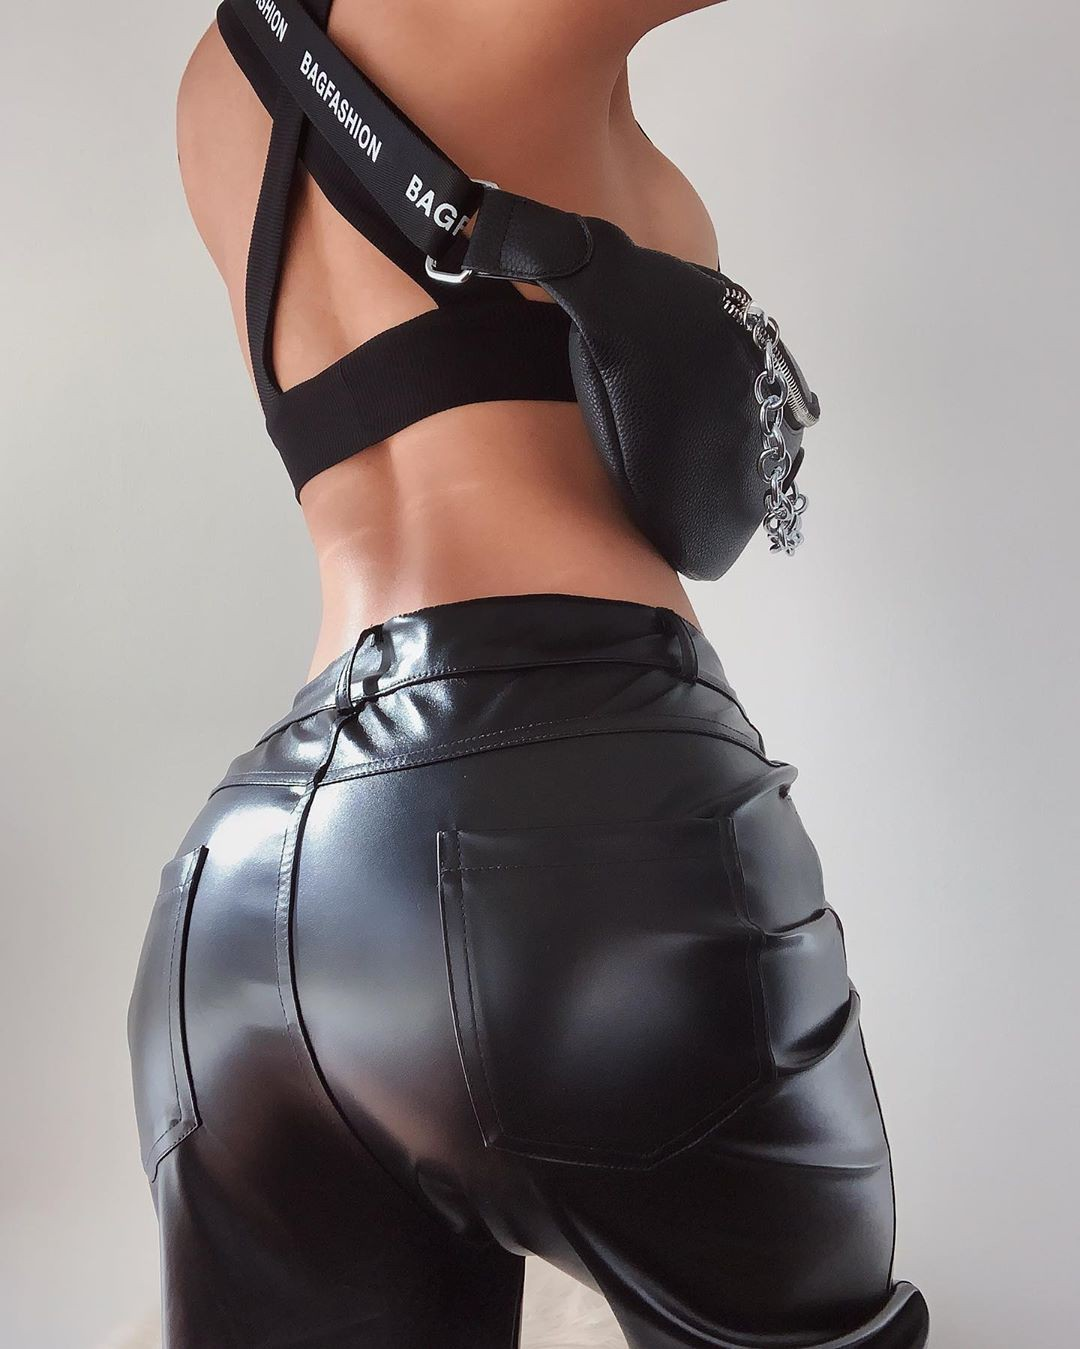 black dress for girls with leather latex clothing, leggings, leather